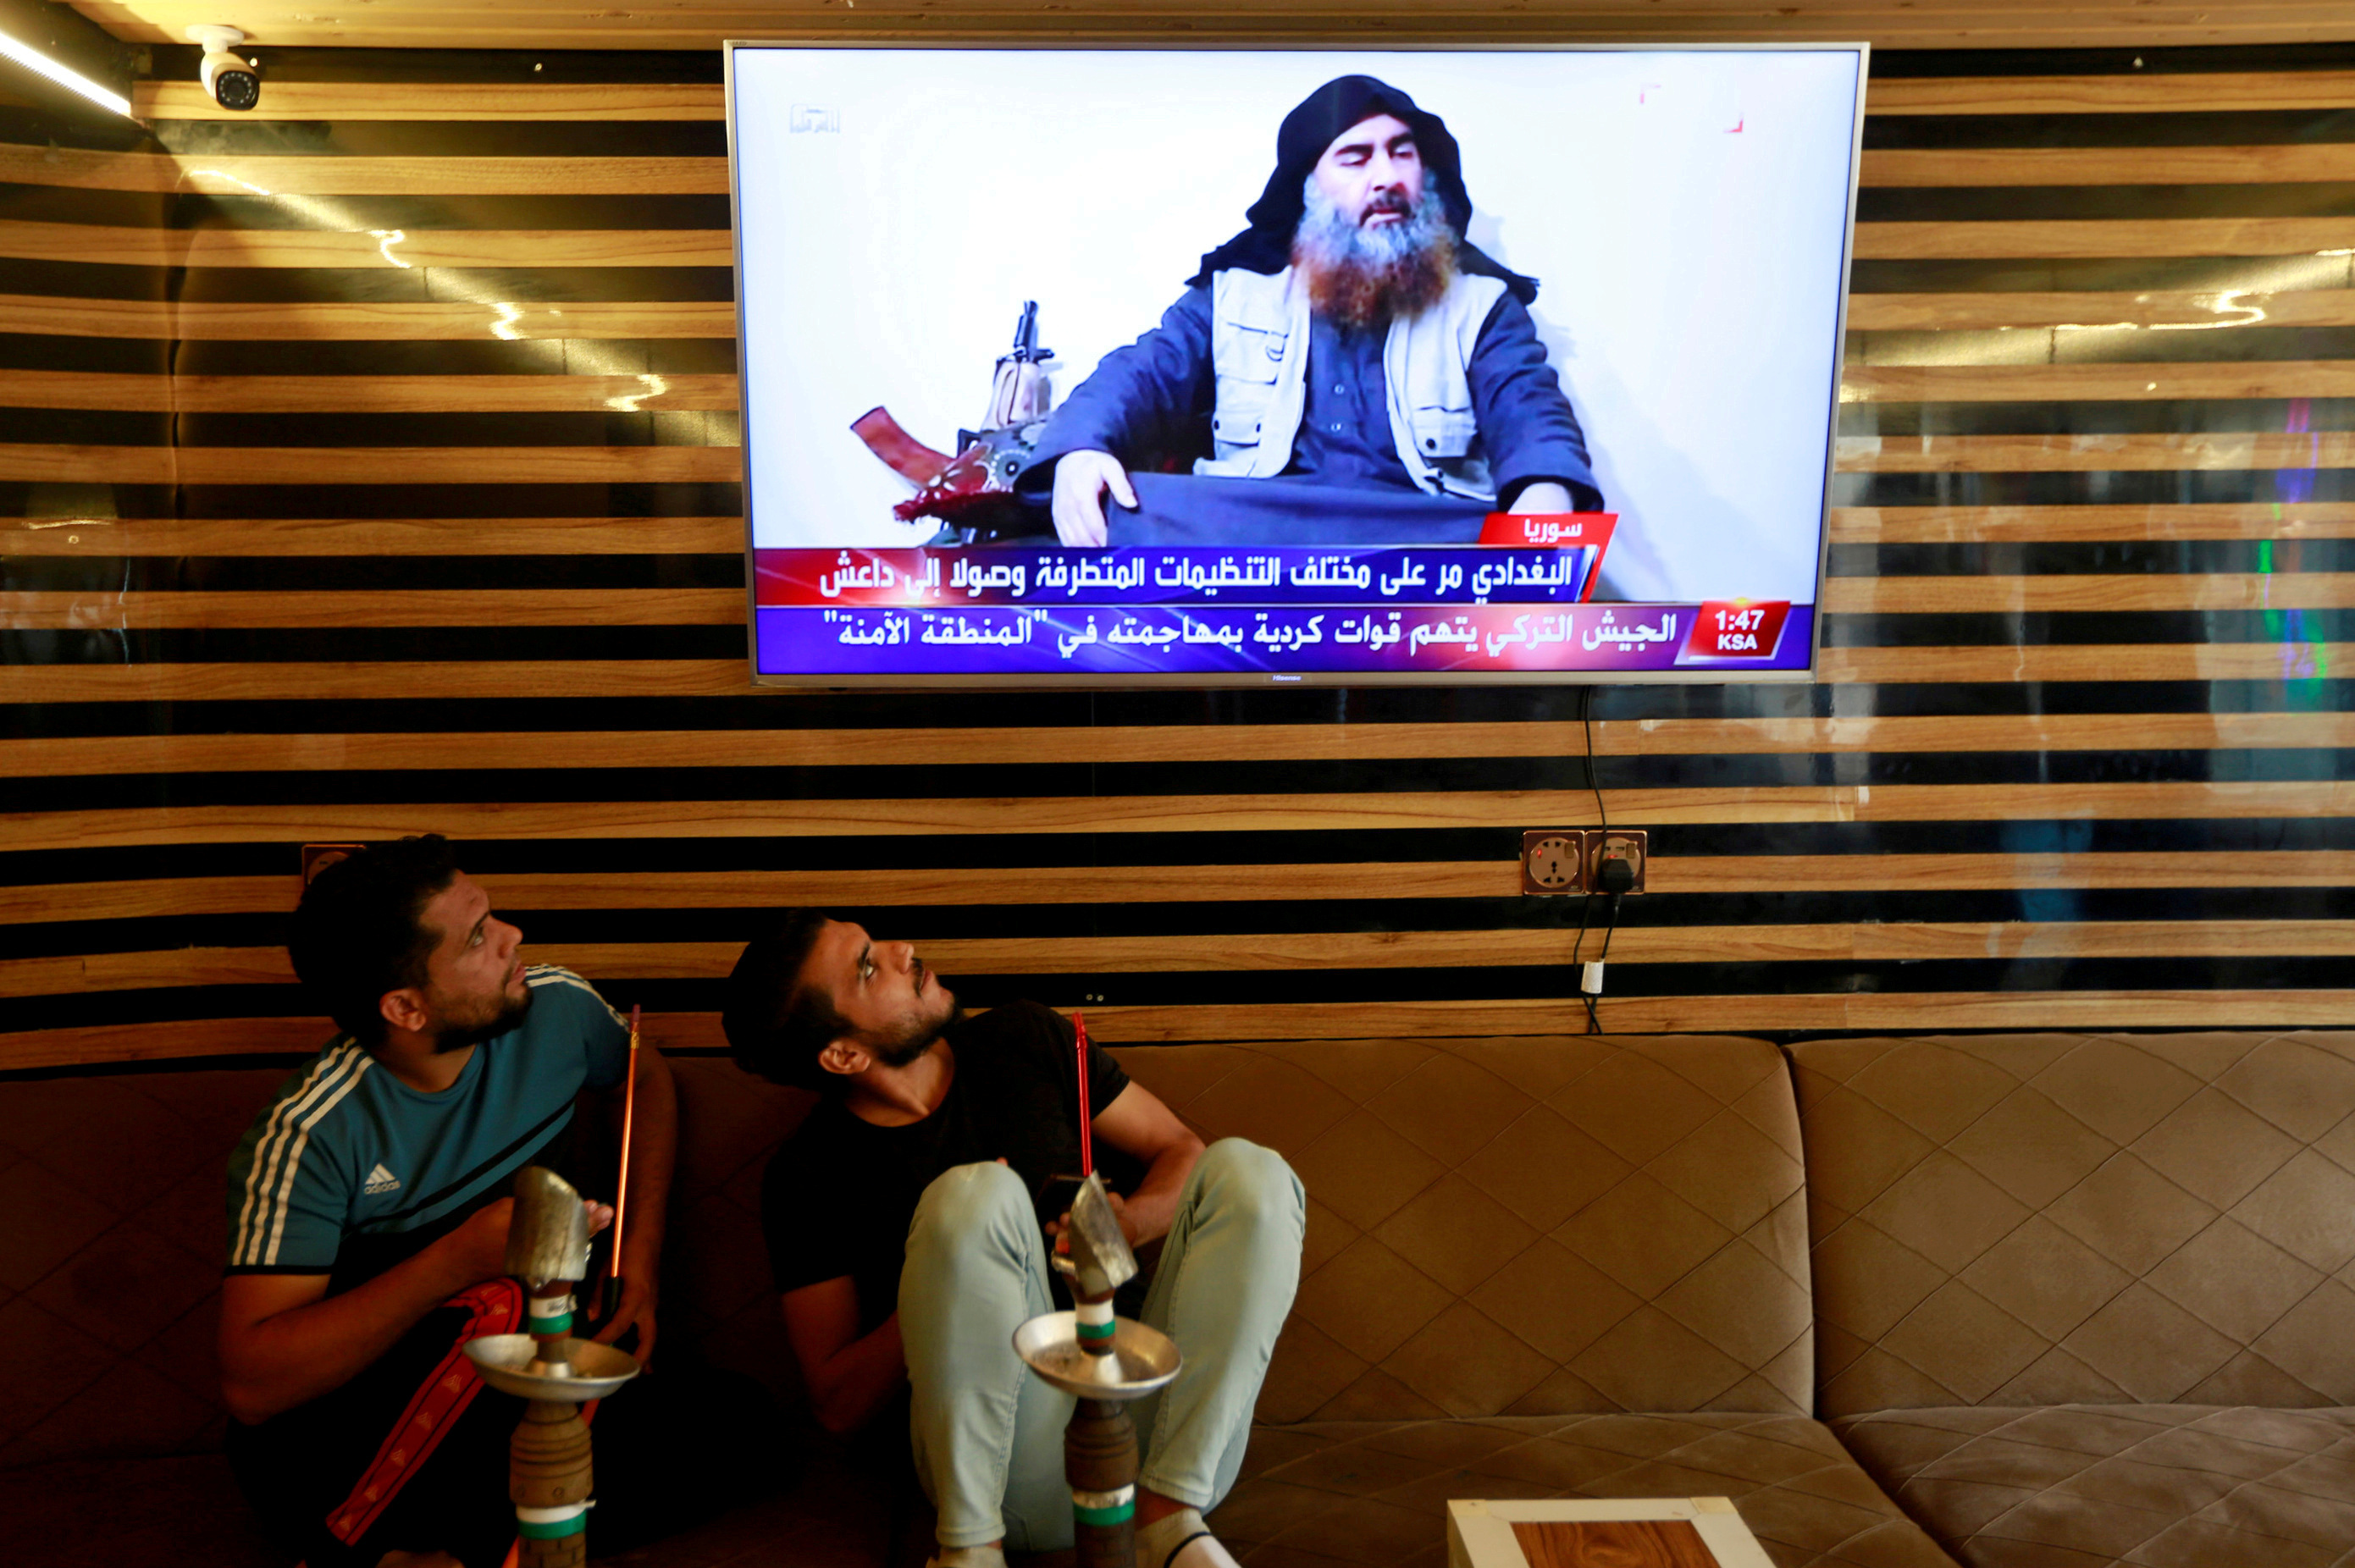 'We Didn't See A Body': Baghdadi's Death Draws Doubts In Lands Where ISIS Ruled